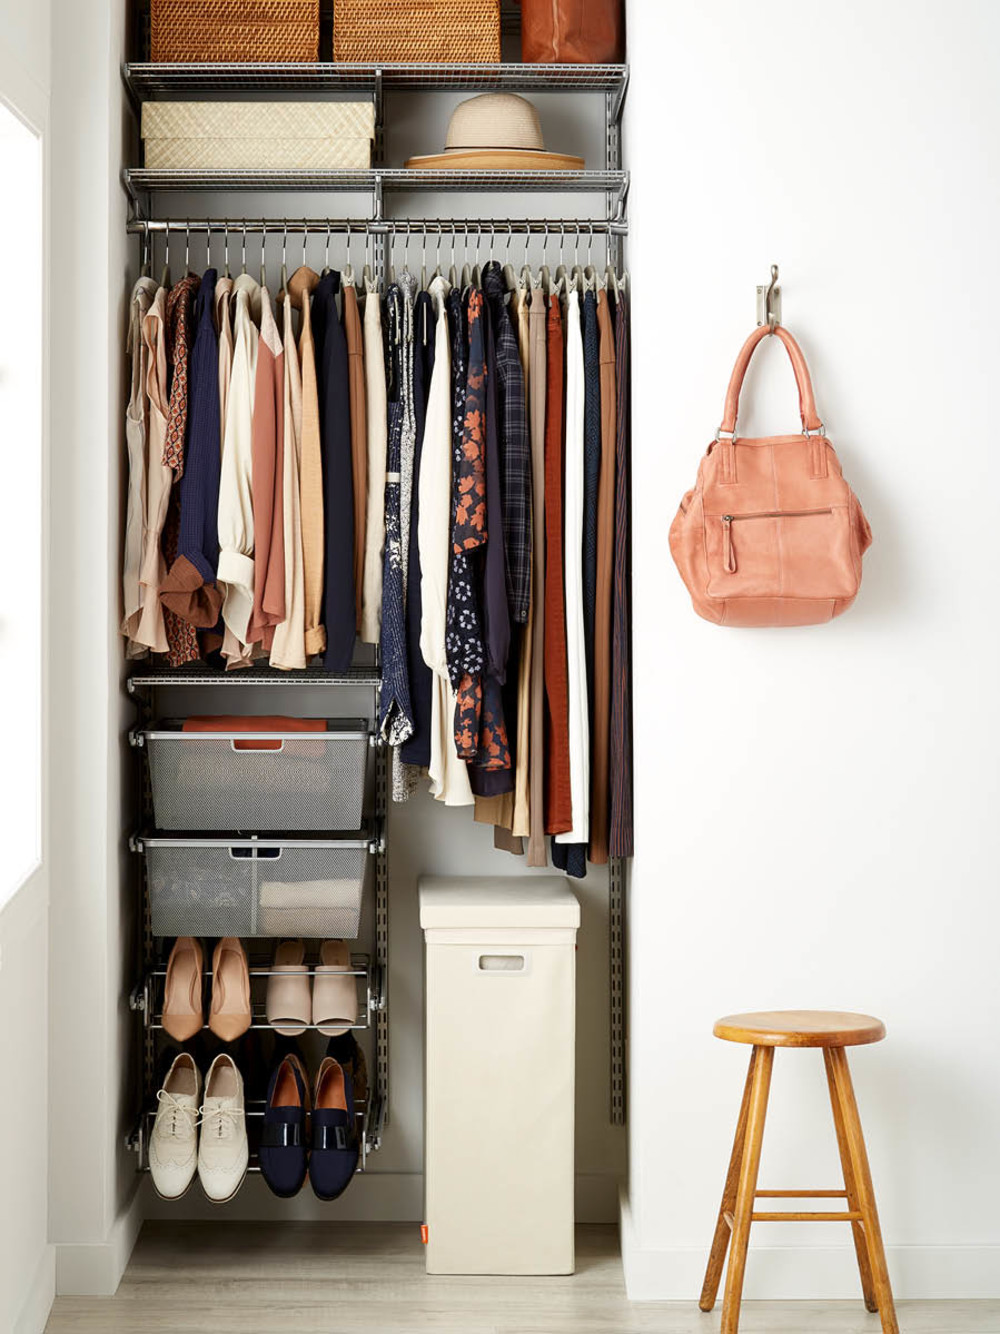 Featured Products: Platinum elfa Small Space Closet // Natural Pandan Shirt  Box // Copper Rattan Storage Bins with Handles // Linen Poppin Laundry  Hamper ...